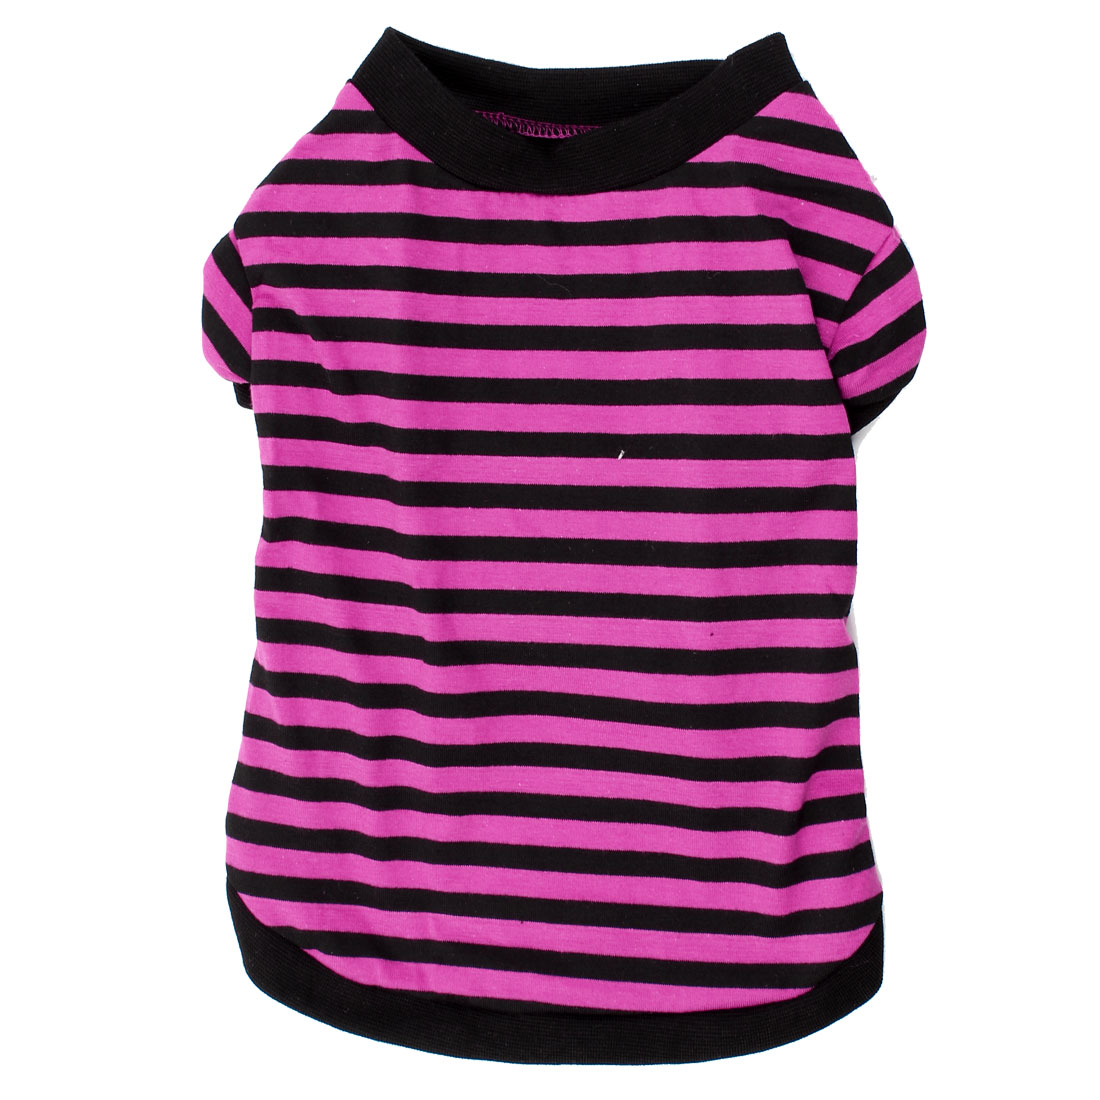 Summer Round Neck Stripe Print Pet Dog Shirt Clothes Fuchsia Black M